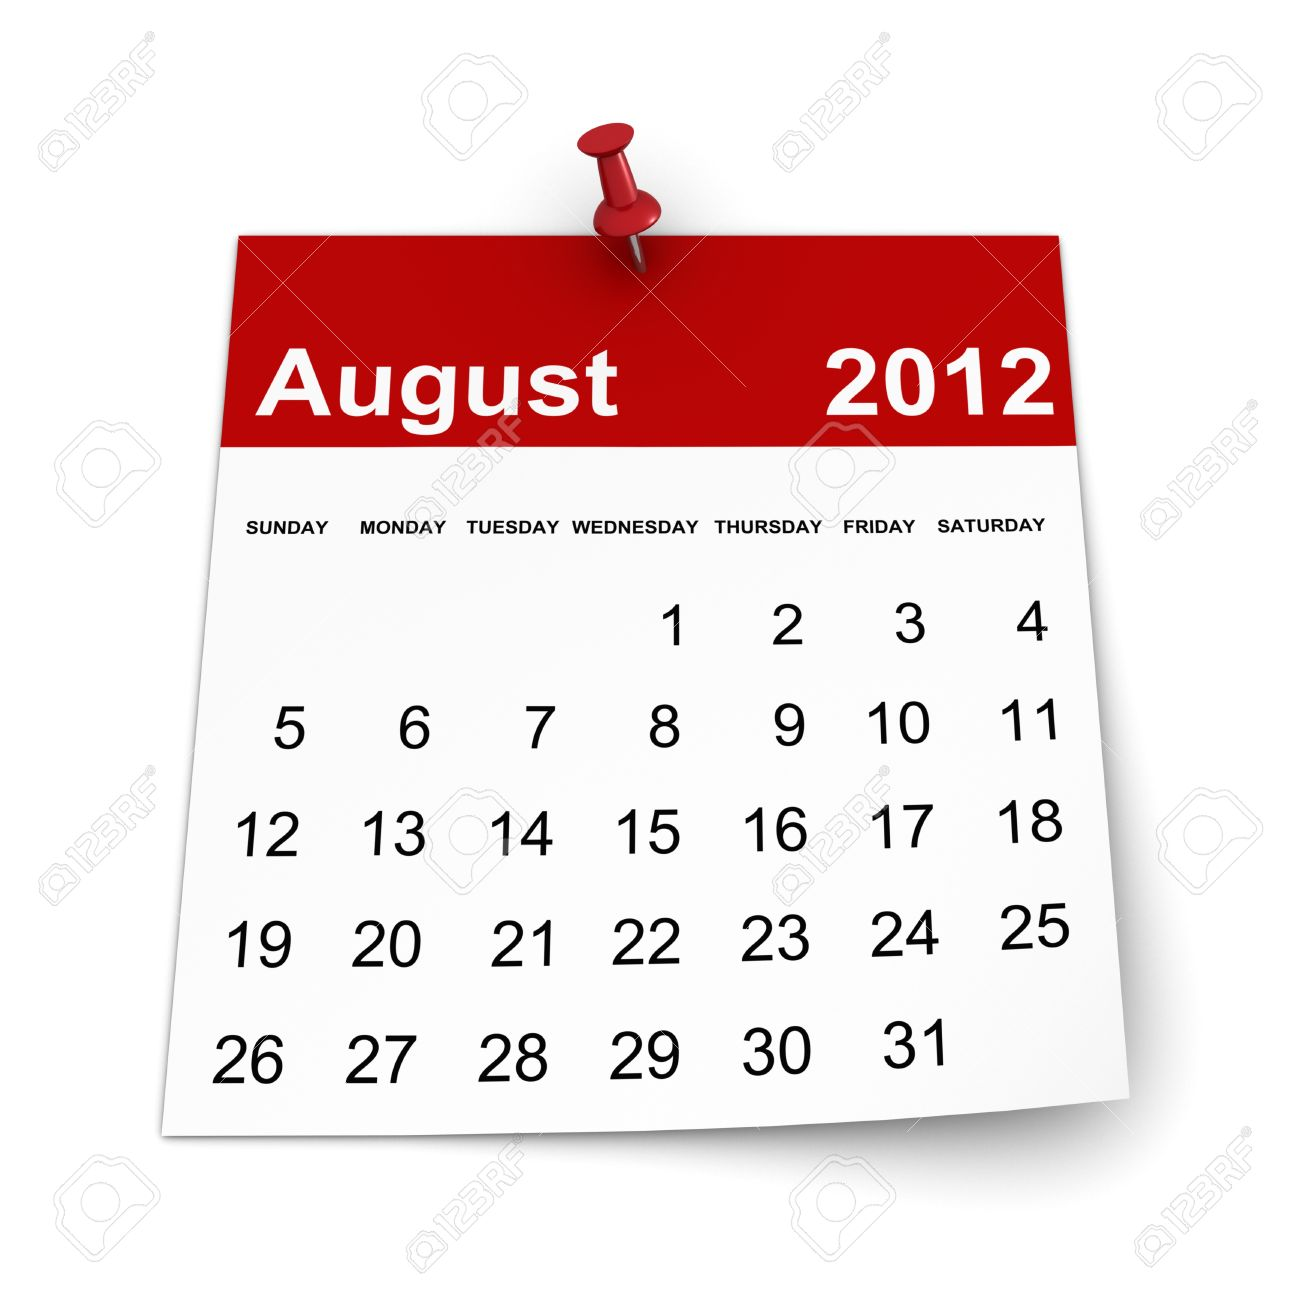 August 2012 calendar clipart image library library Calendar 2012 - August Stock Photo, Picture And Royalty Free Image ... image library library